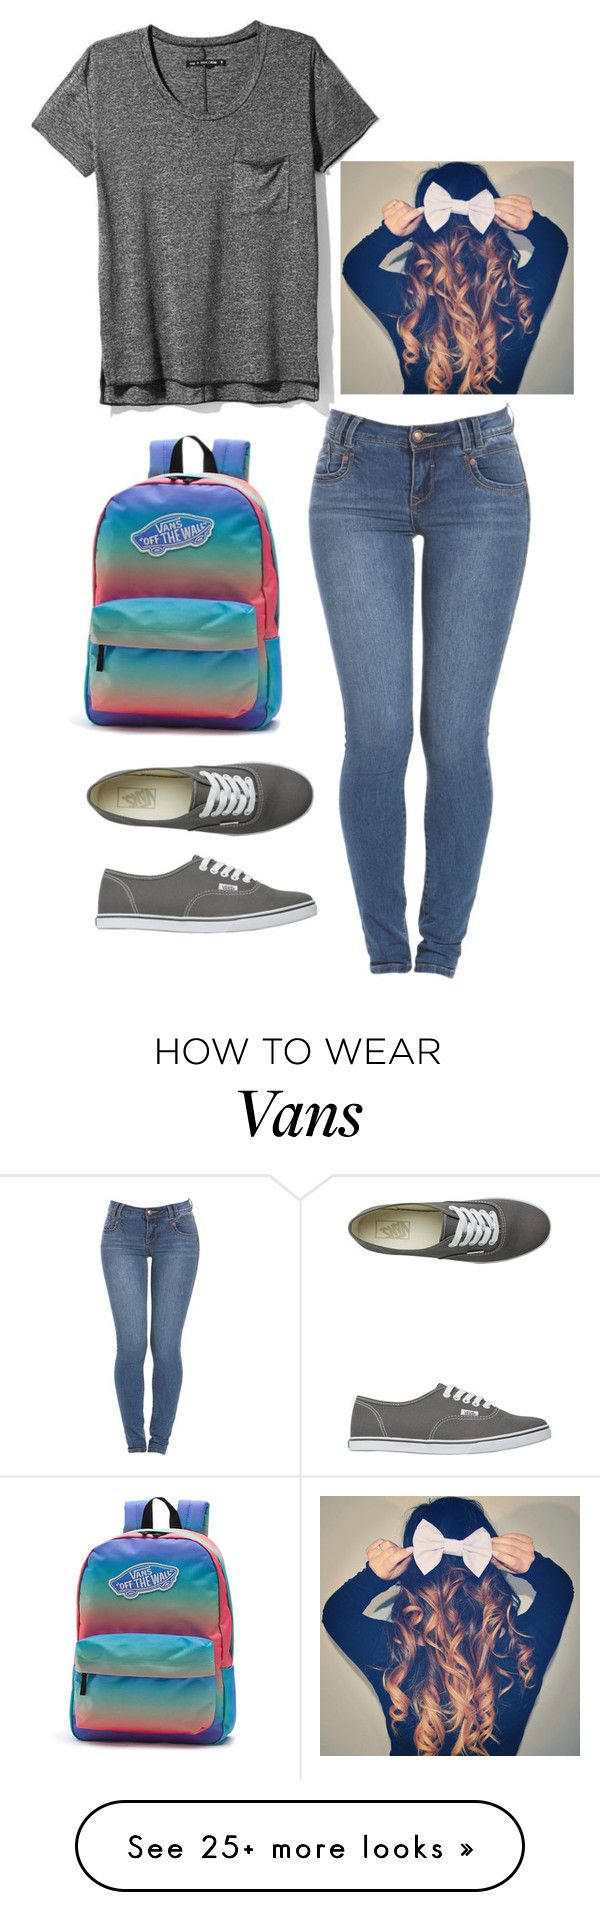 """""""Grey!<3"""" by lexi-lorenze on Polyvore featuring Vans, rag & bone, women's clothing, women's fashion, women, female, woman, misses and juniors"""